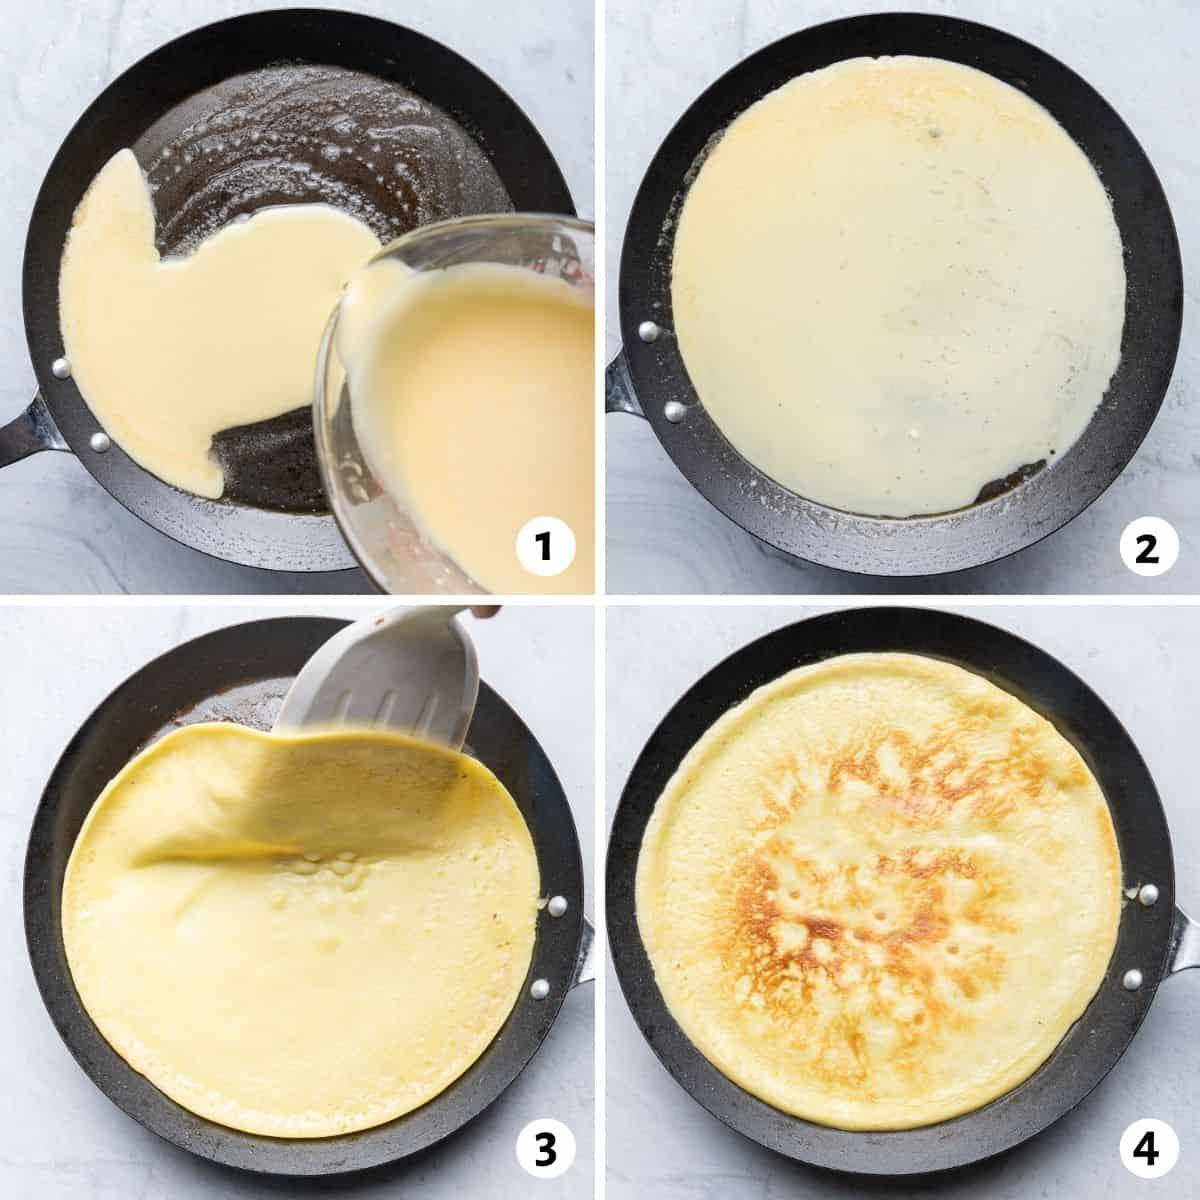 4 image collage to show how to make the recipe in a non-stick skillet